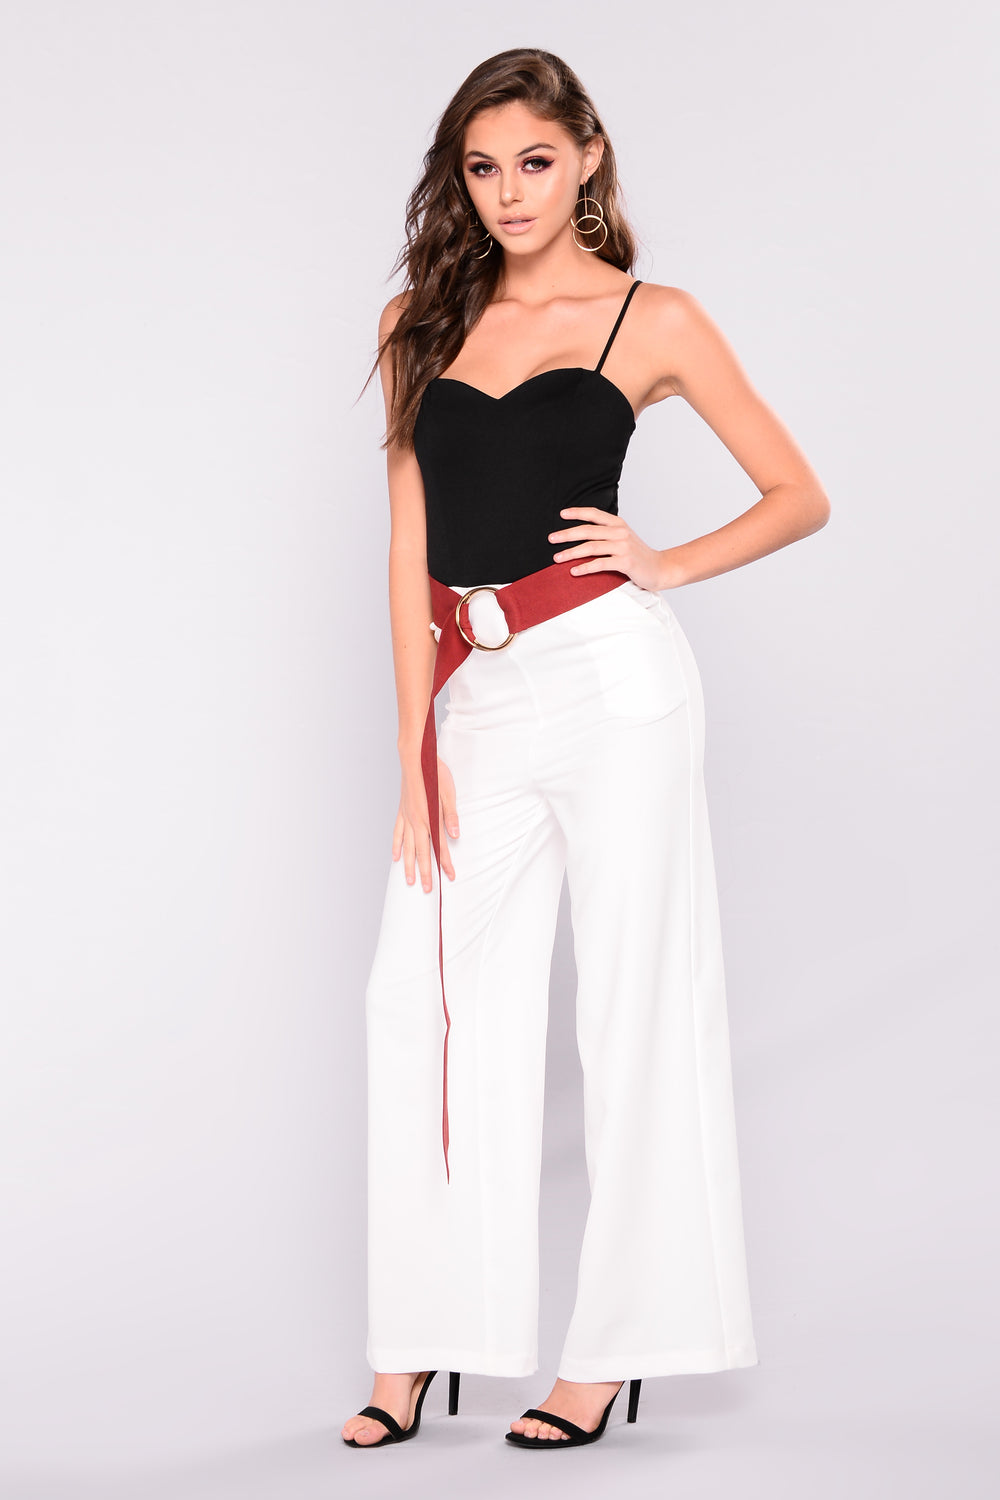 In Good Company Colorblock Jumpsuit - Black/White